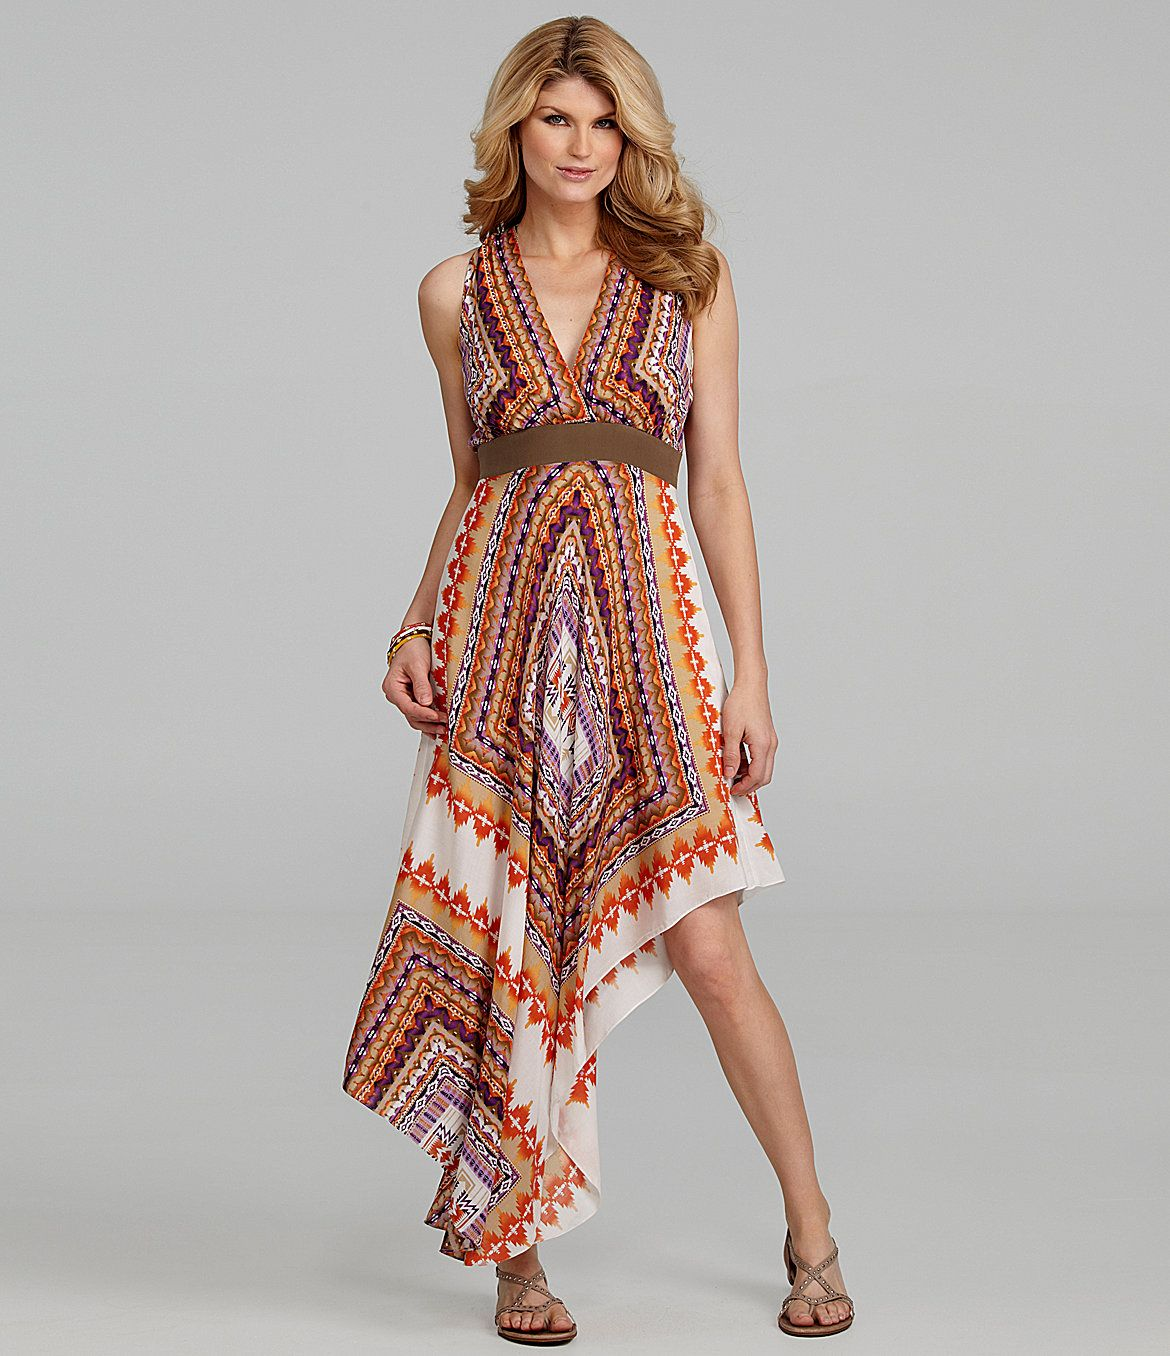 Antonio Melani Lourdes Handkerchief-Print Dress | Dillard's. gorgeous!!